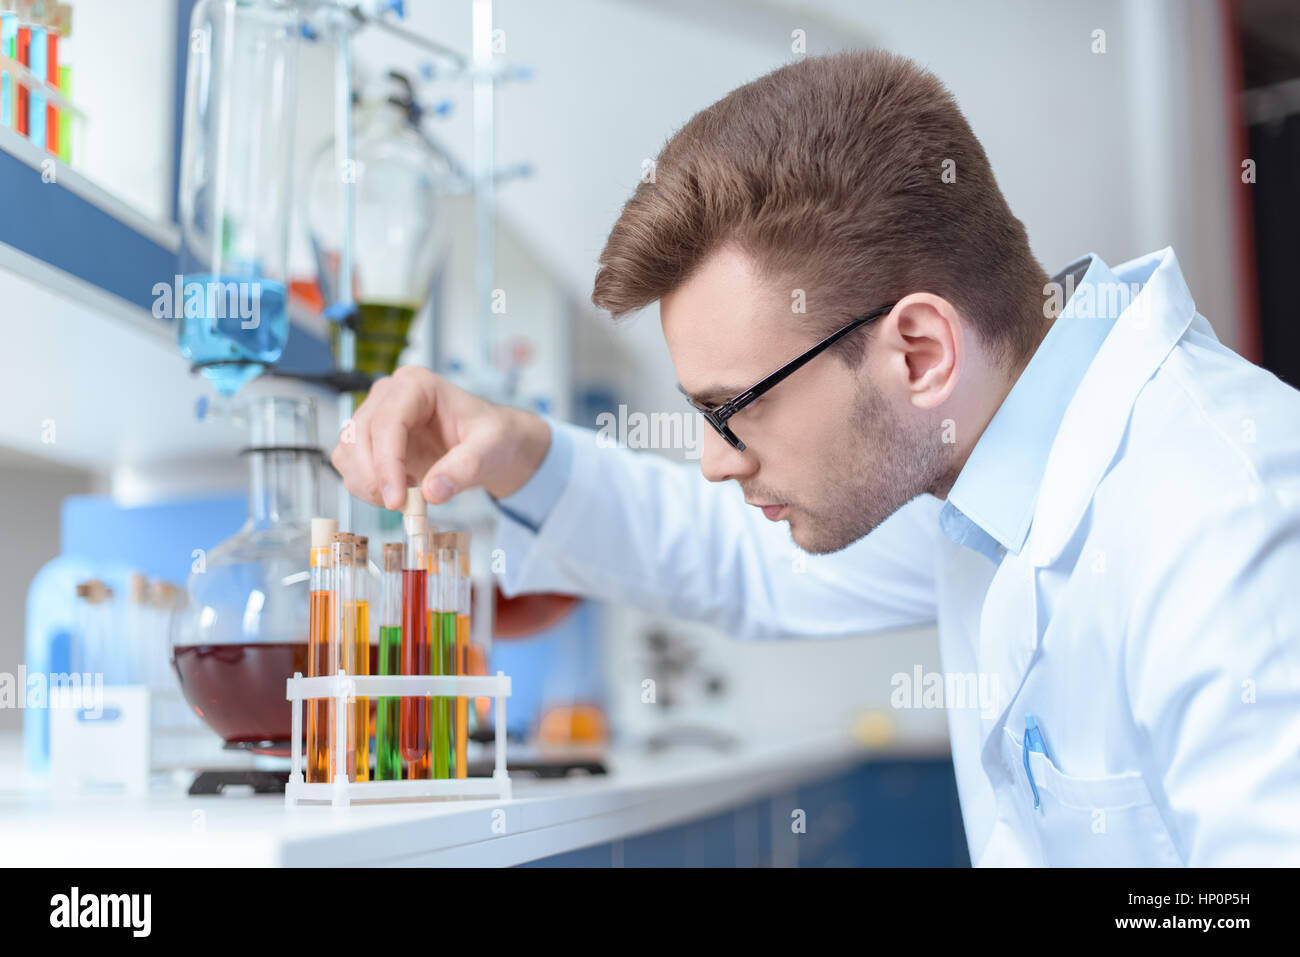 young man scientist holding test tube with reagent in lab - Stock Image